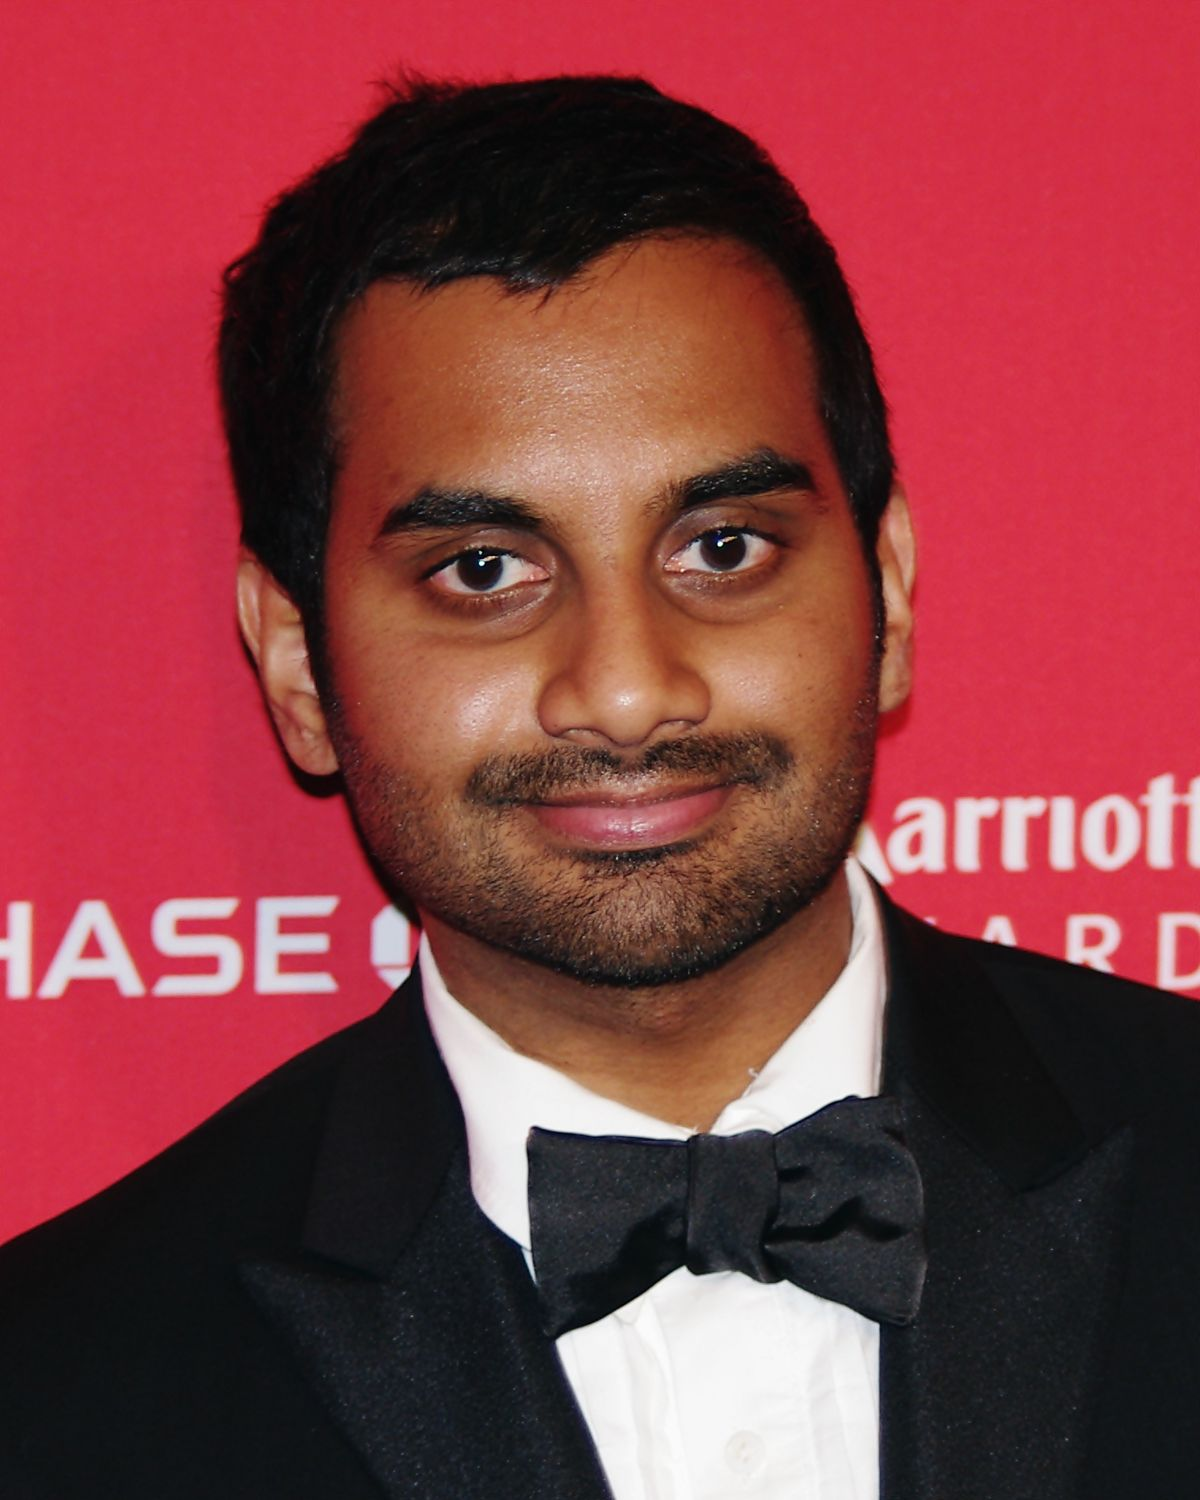 Aziz Ansari Is A Product Of A Bad Sex Education System